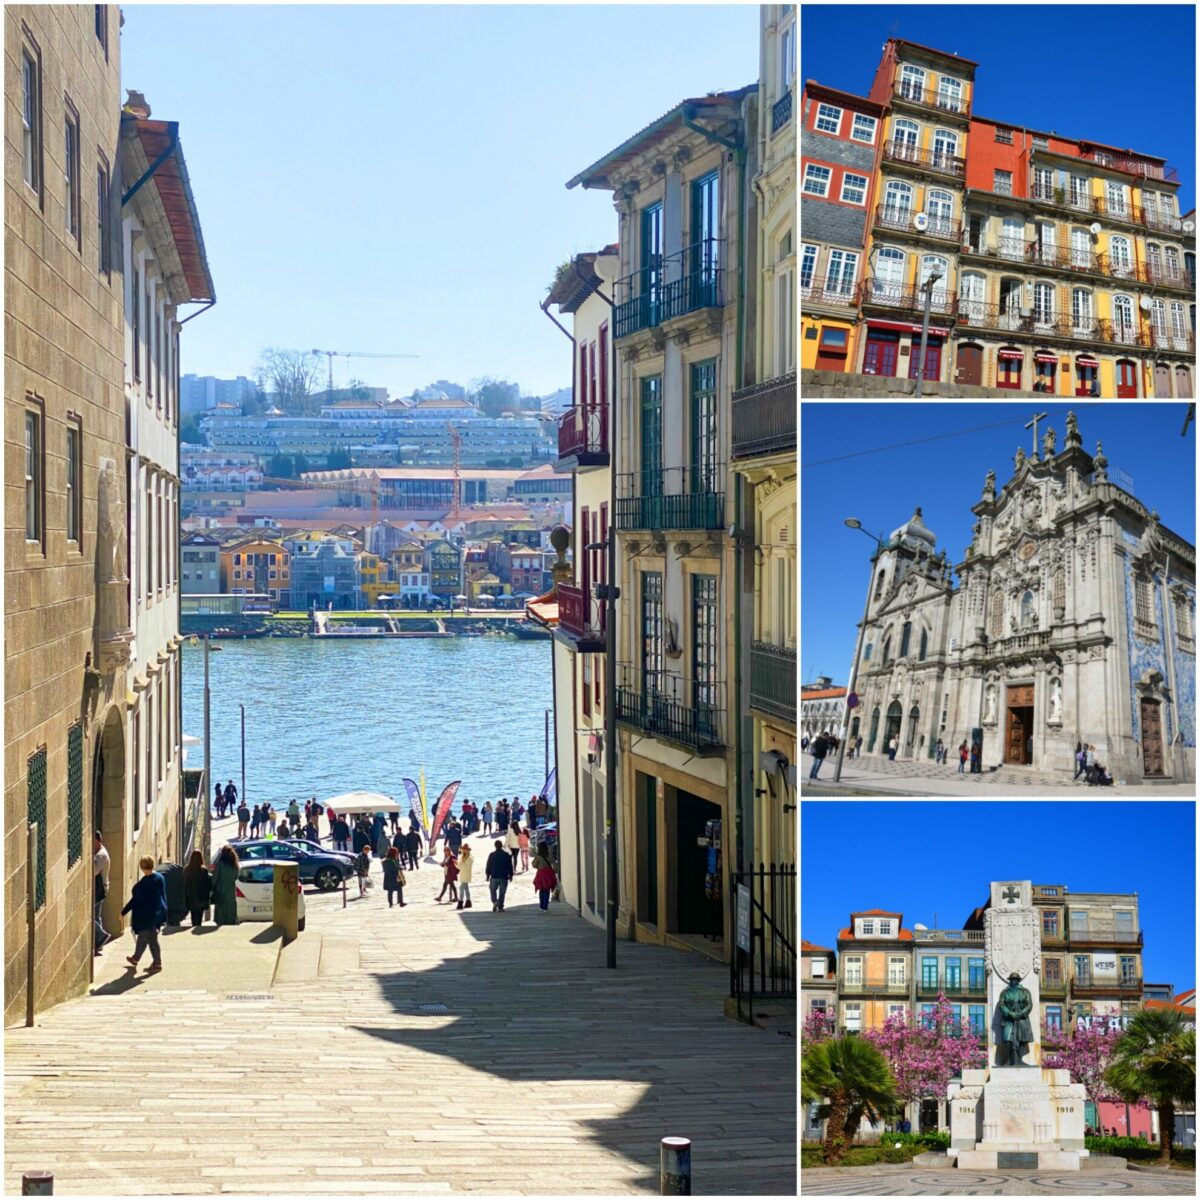 Sites in Porto, Portugal